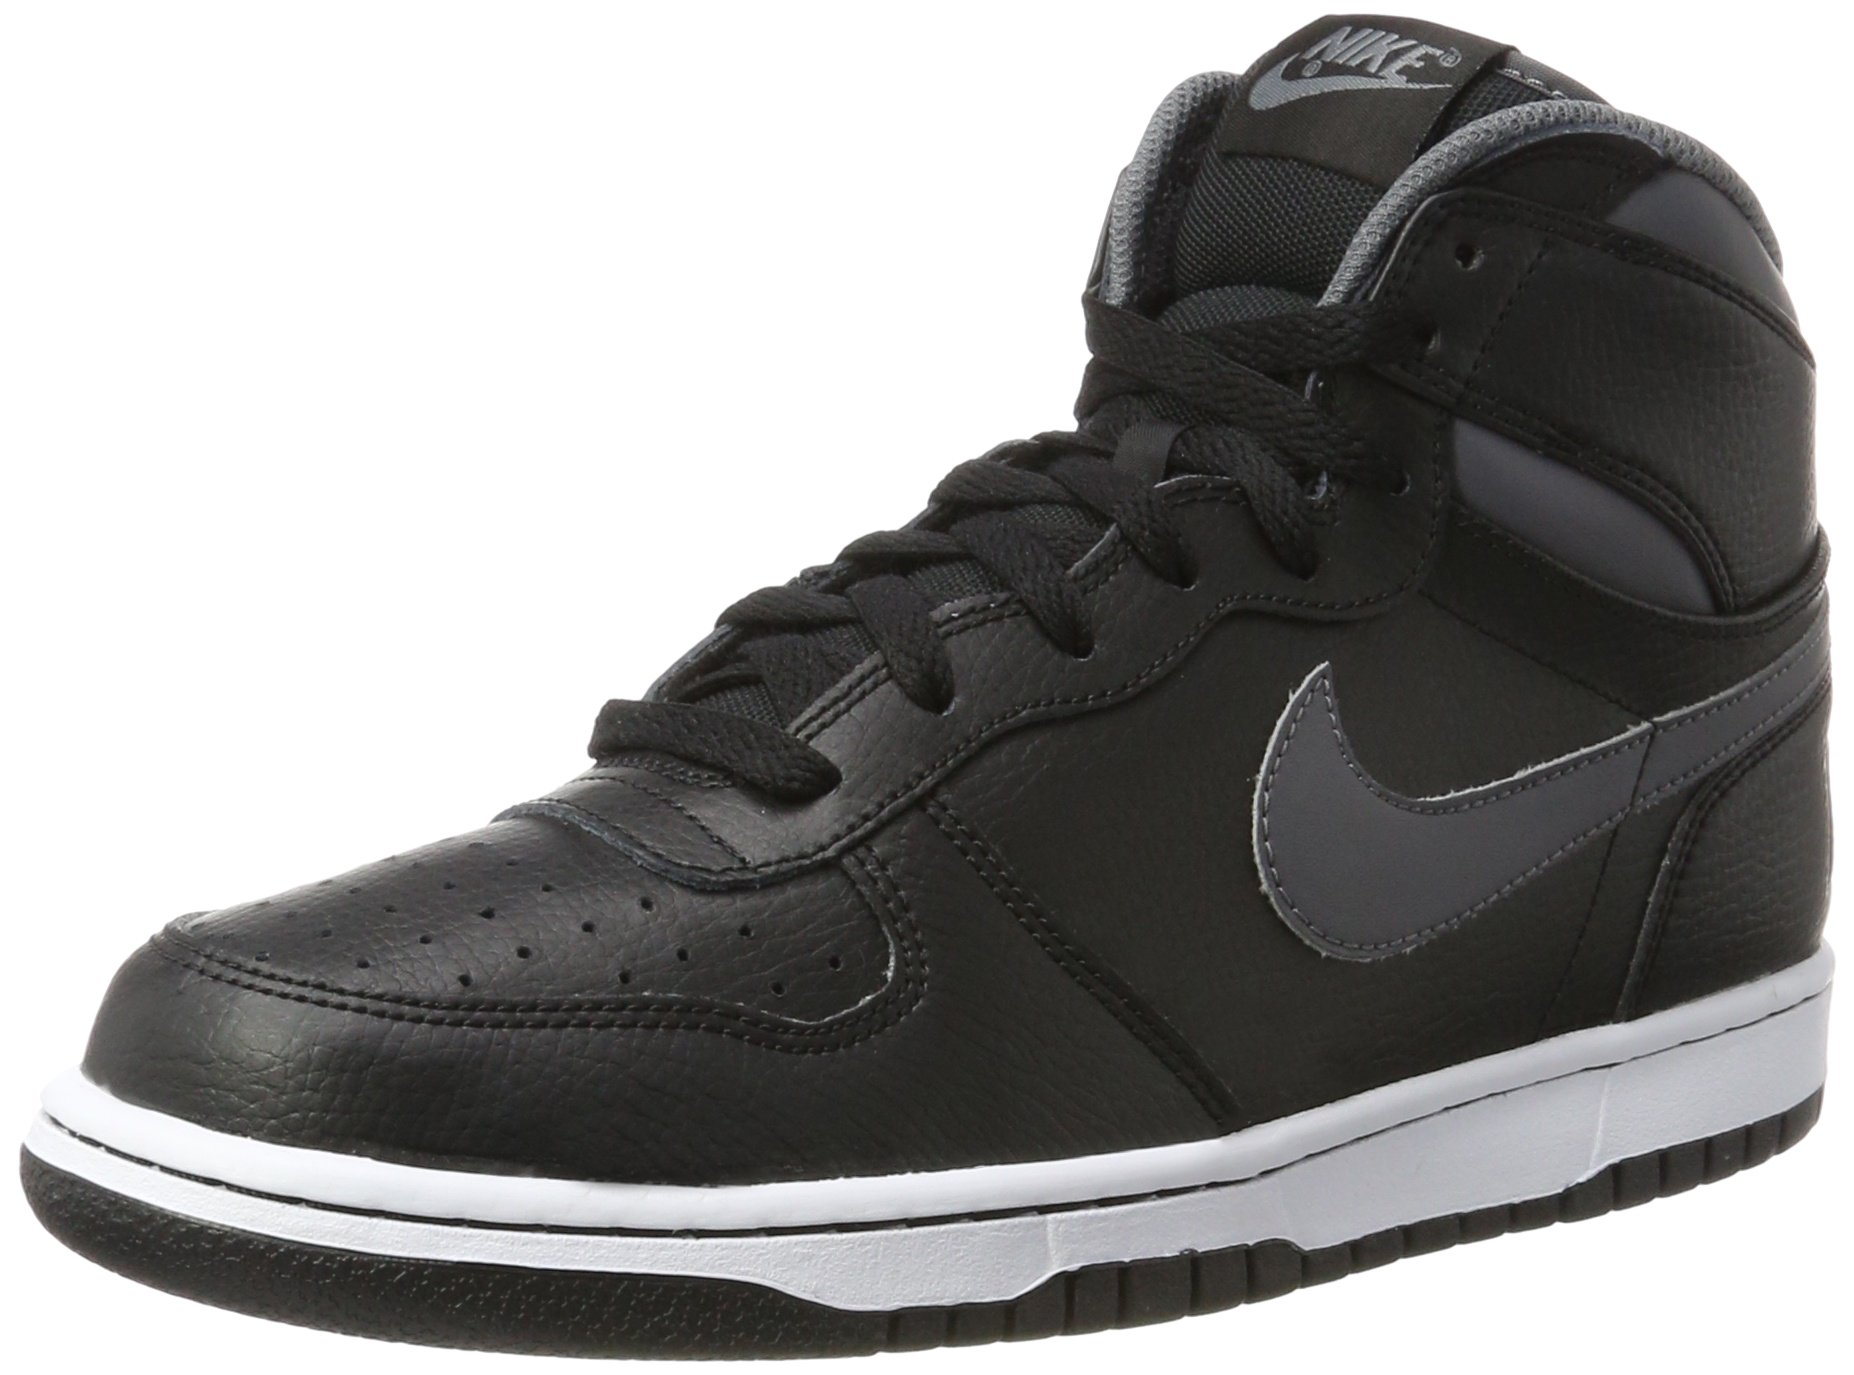 Nike Big Nike High Mens 336608 014 Black Grey Leather